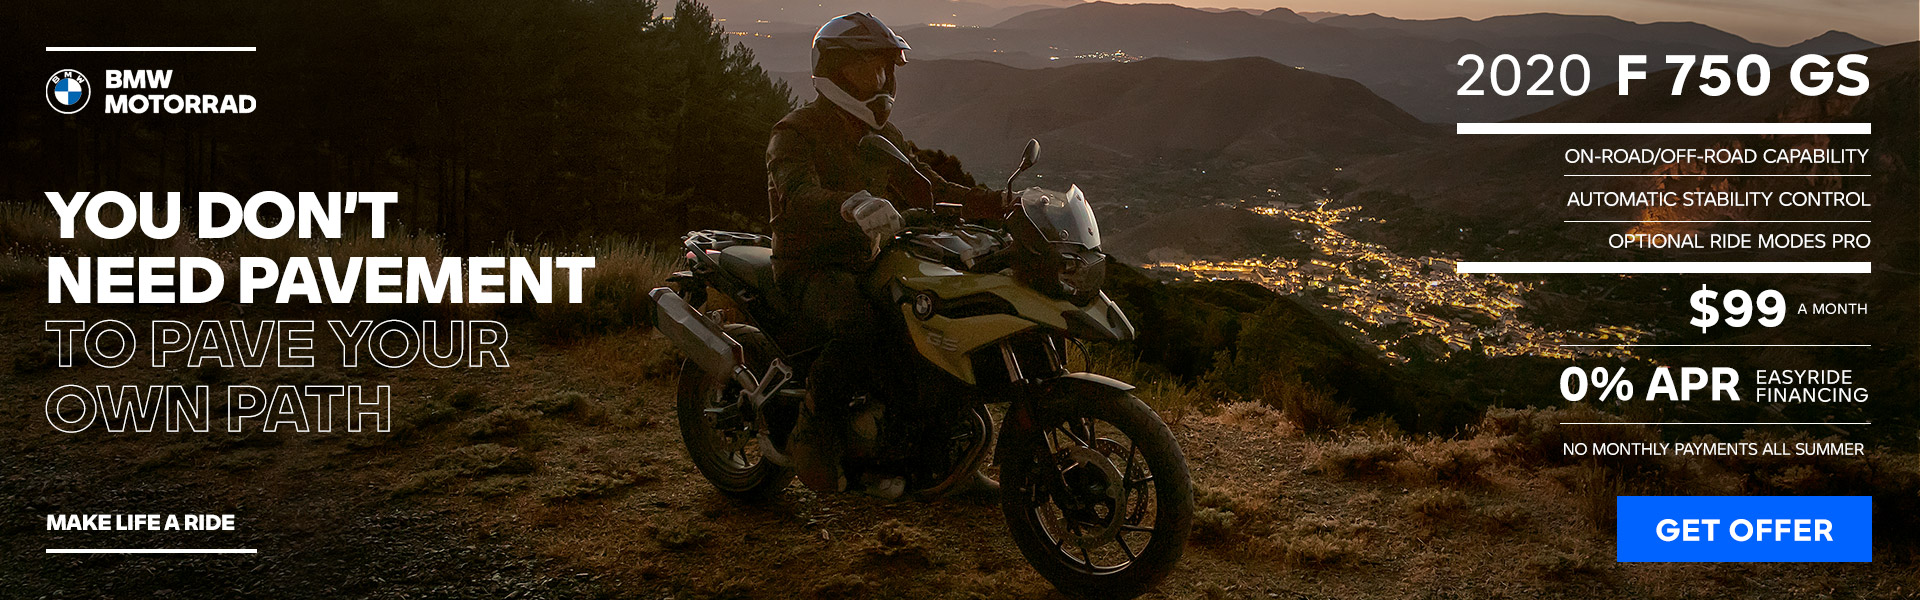 2020 F 750 GS - 0% APR NO MONTHLY PAYMENTS ALL SUMMER $99 A MONTH